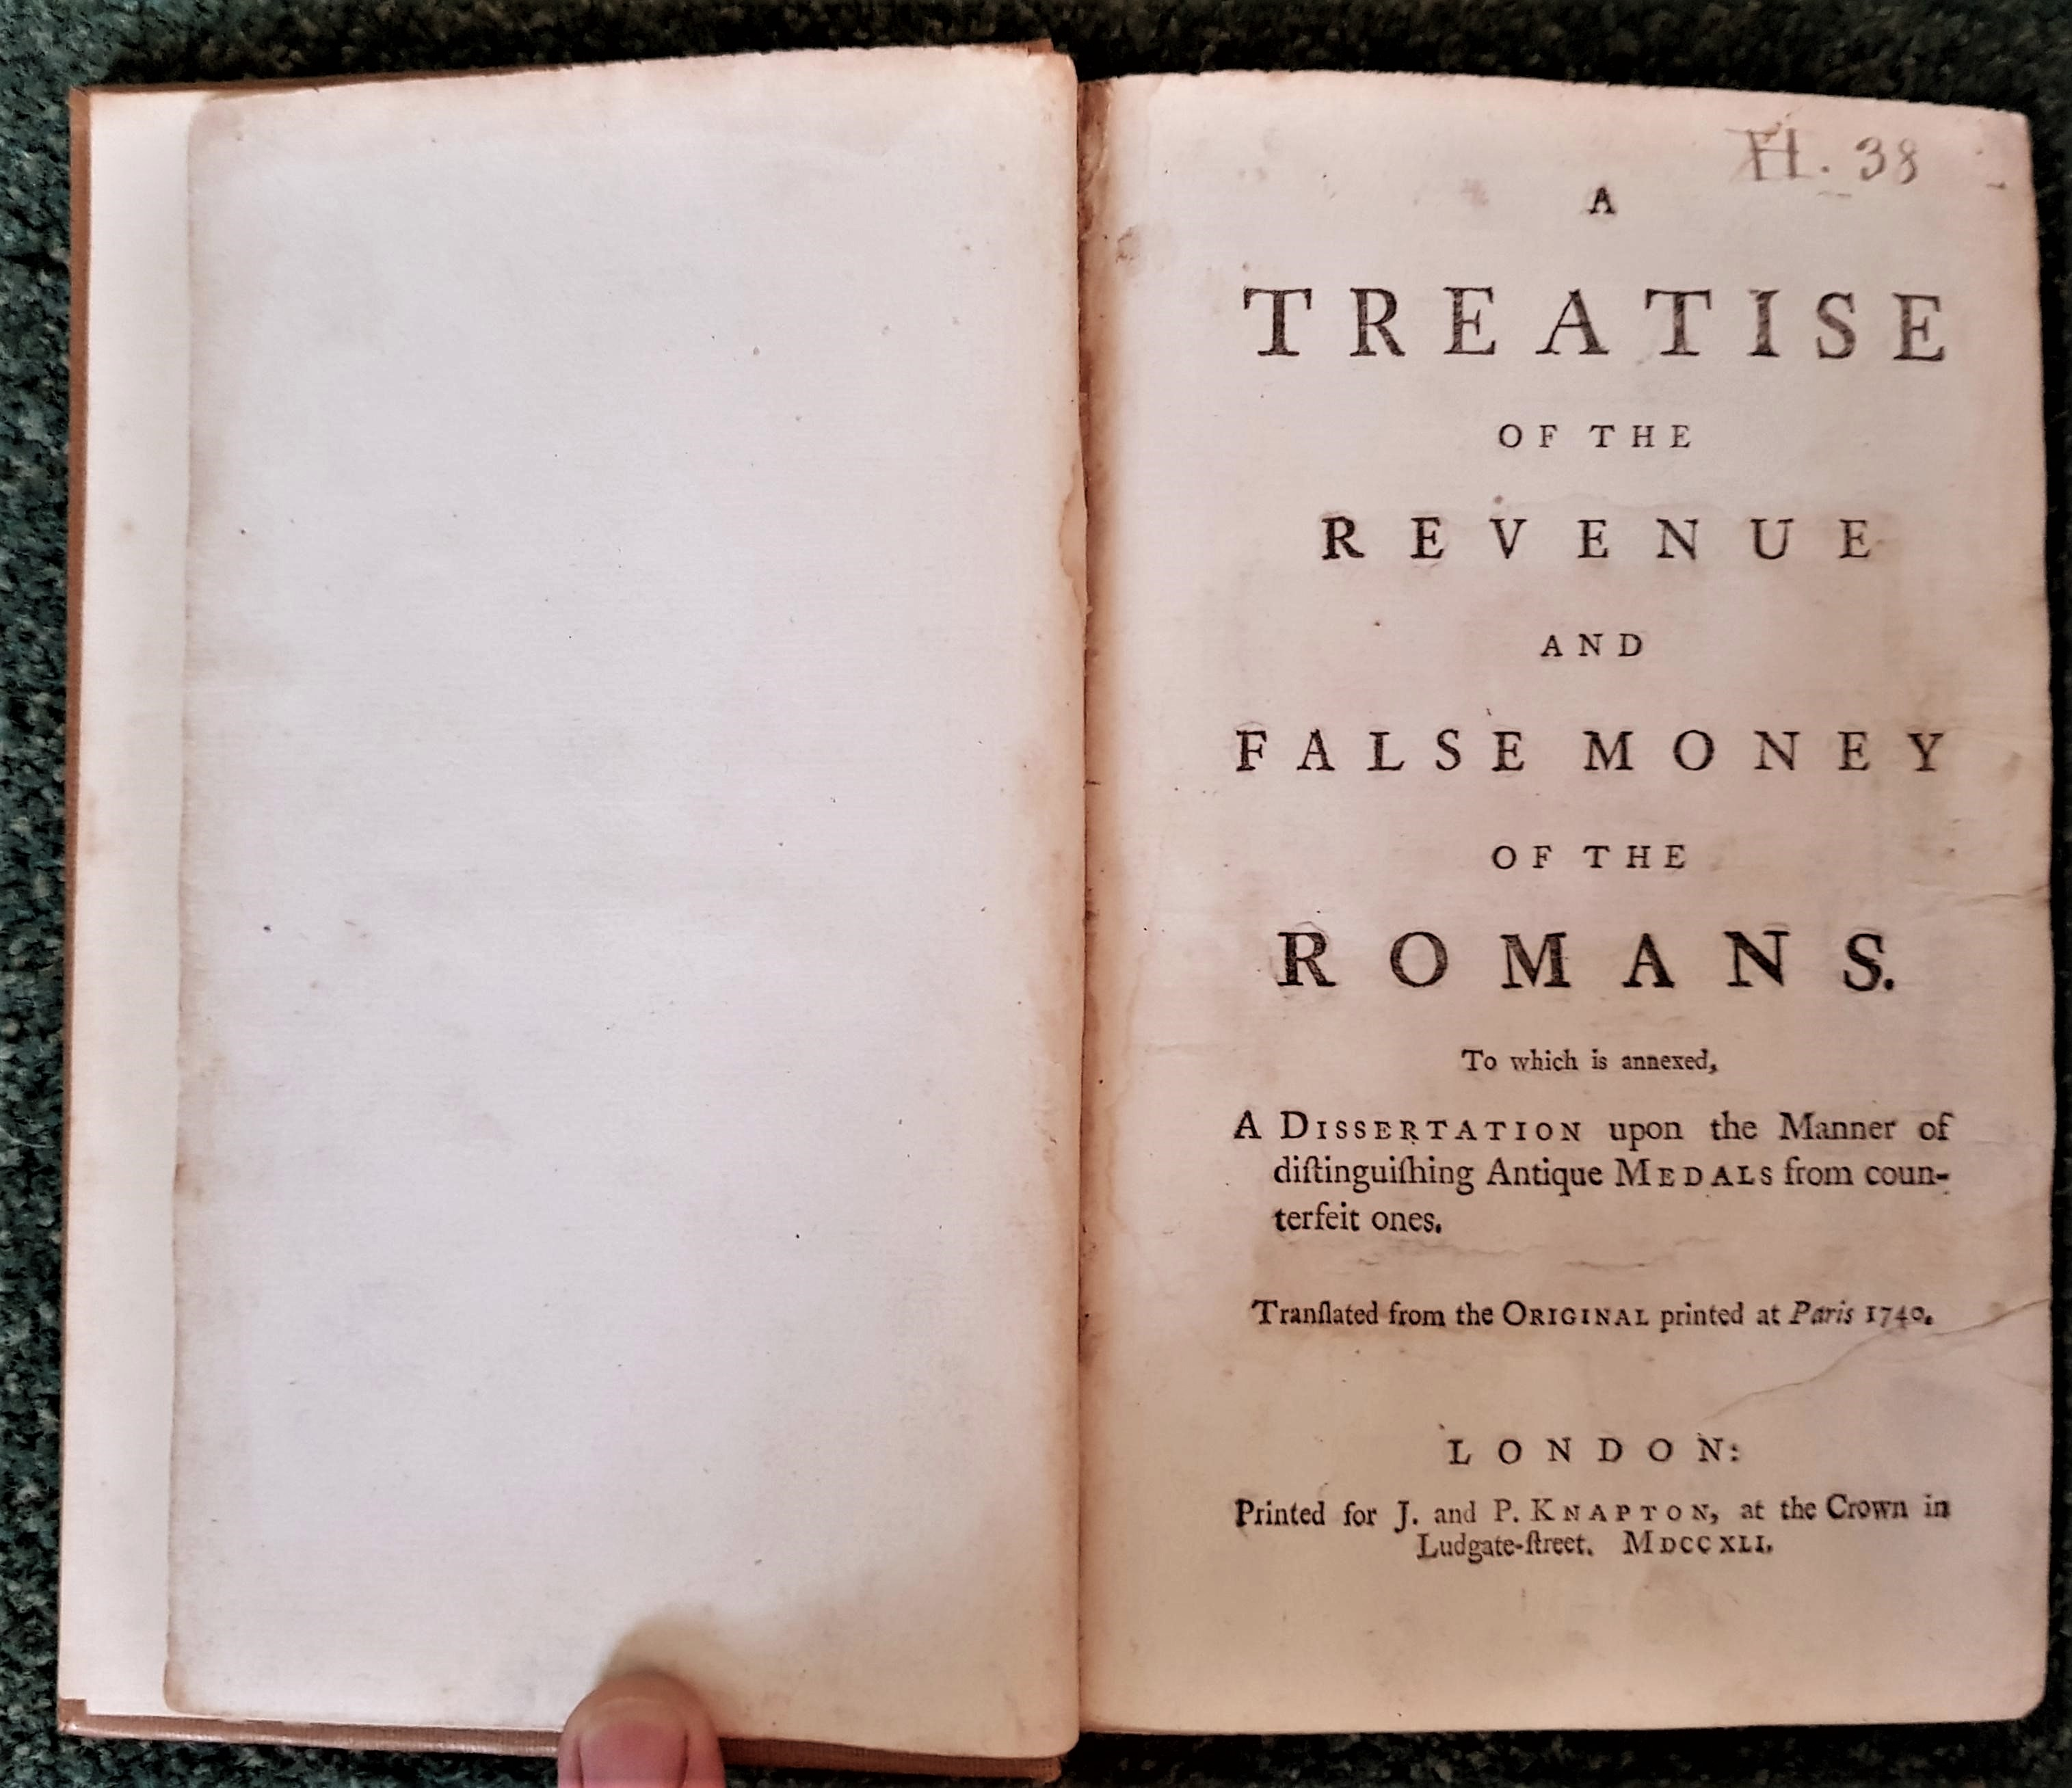 Image for A Treatise Of The Revenue And False Money Of The Romans. To which is annexed, a dissertation upon the manner of distinguishing antique medals from counterfeit ones. Translated from the original printed at Paris 1740 .